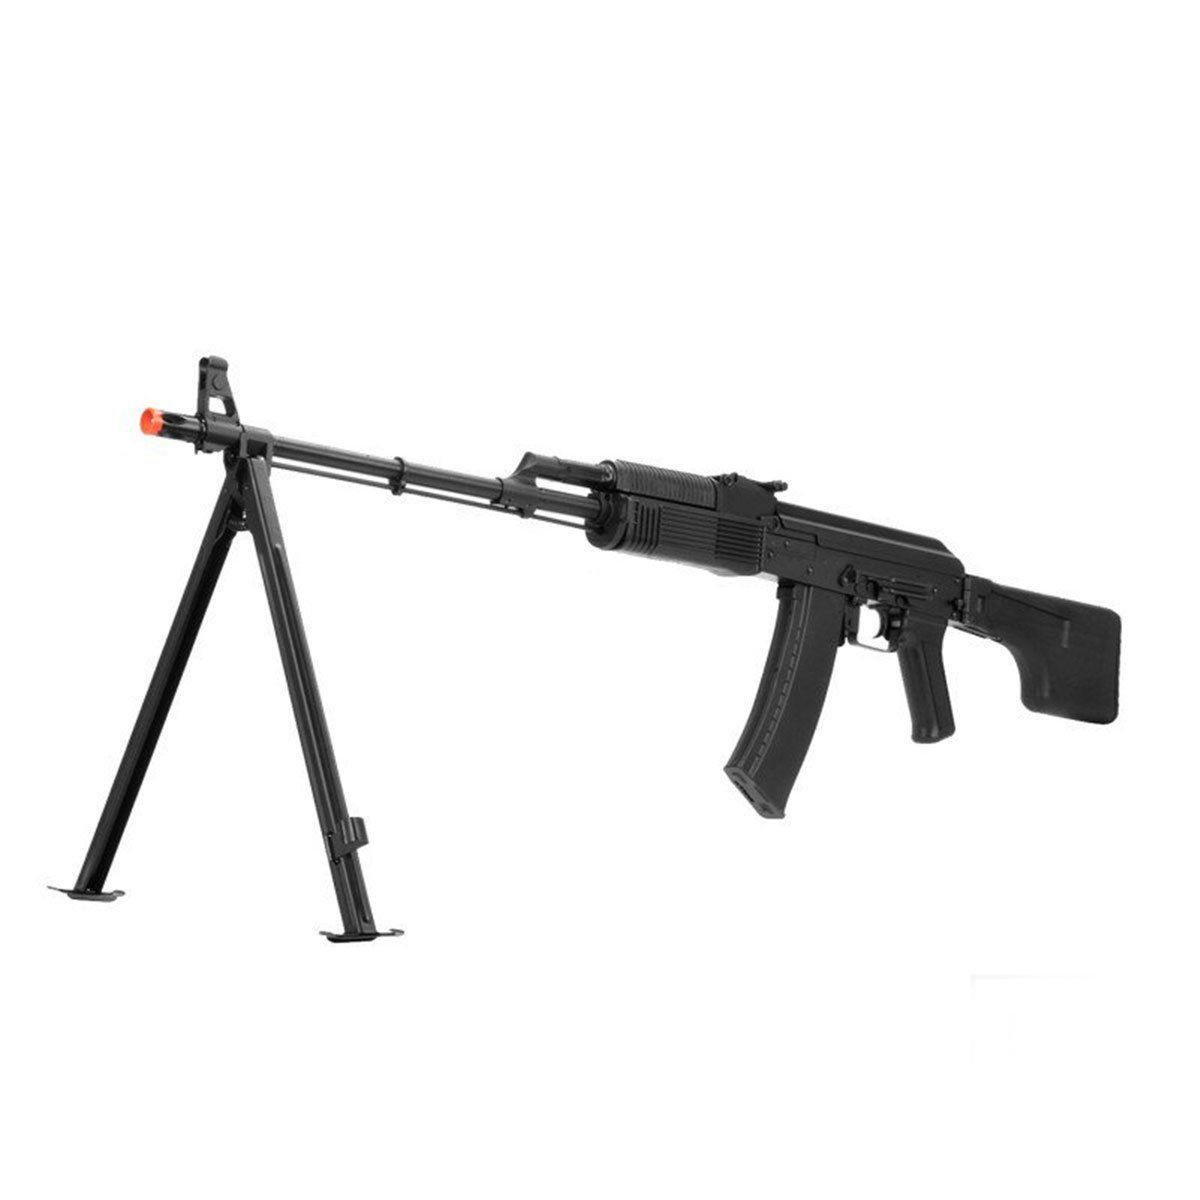 Rifle Airsoft LCT RPK 74 MN Full Metal Elétrico 6mm + Bipé